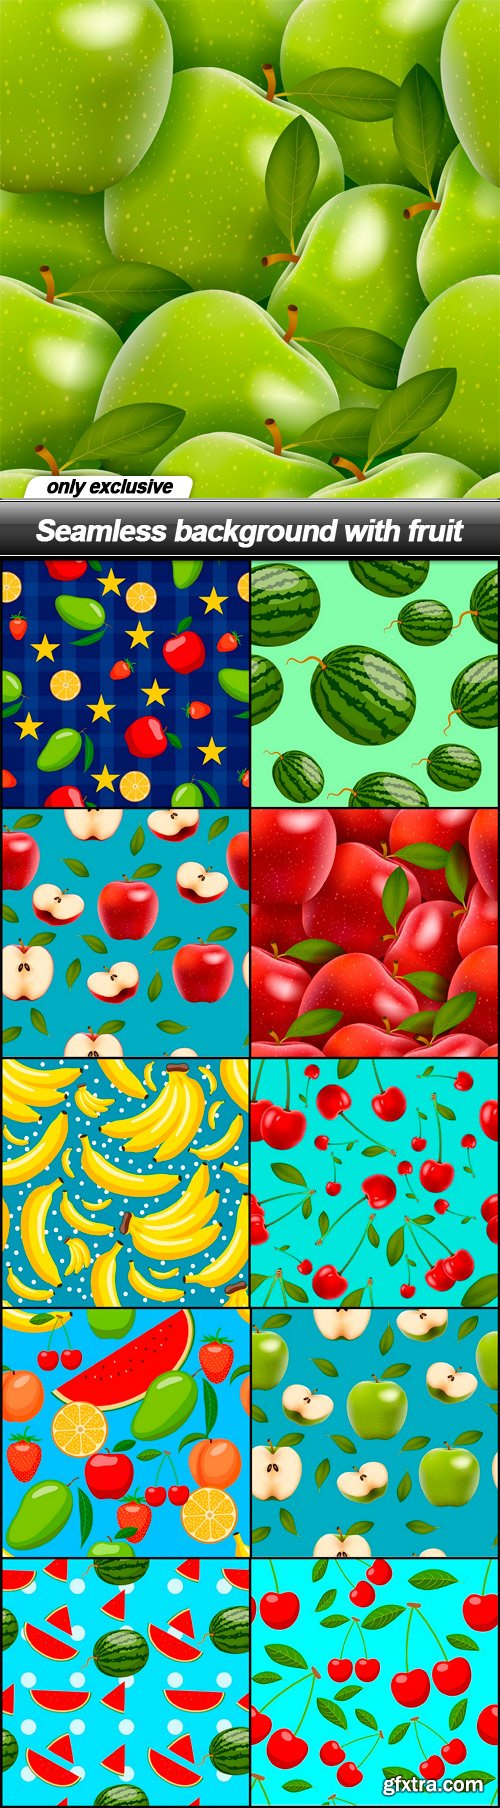 Seamless background with fruit - 11 EPS